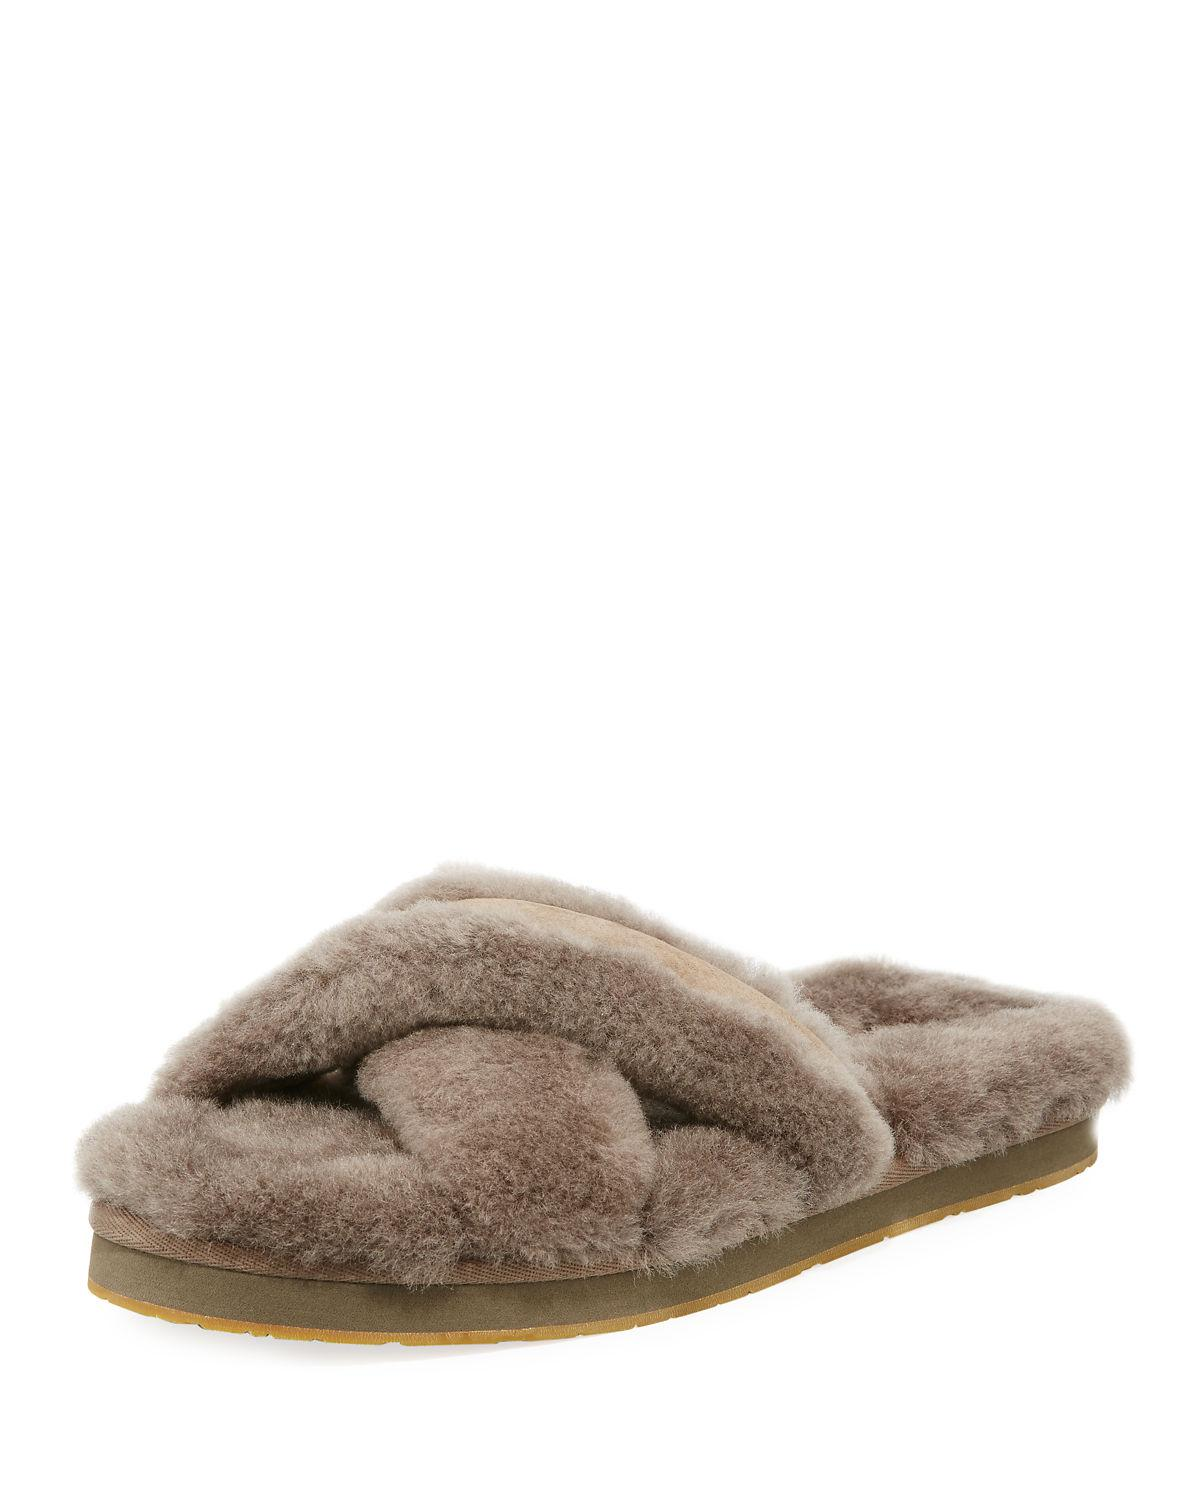 129648a8d62 UGG Abela Shearling & Suede Slipper - Save 33% - Lyst